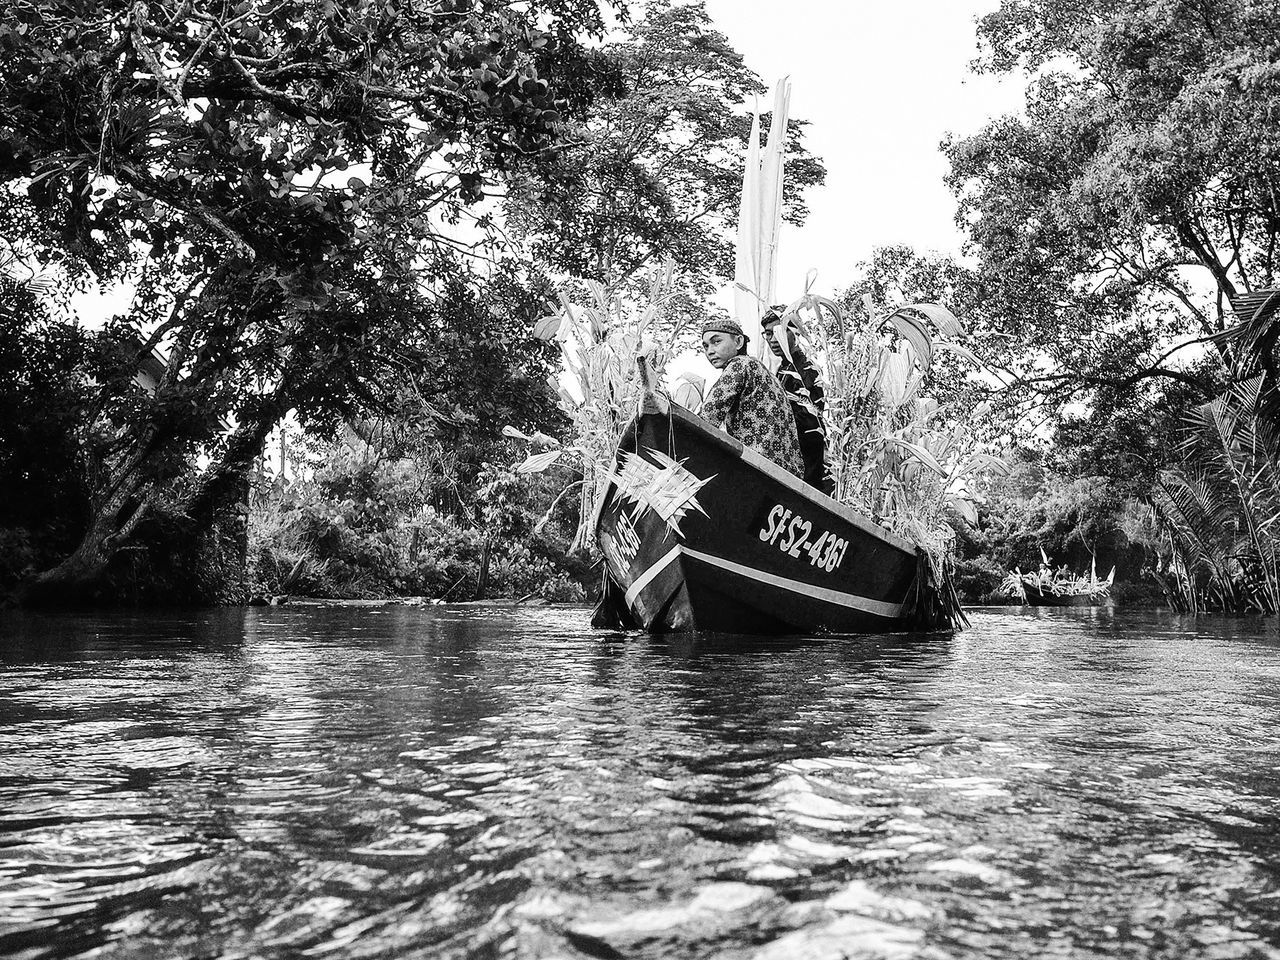 tree, water, transportation, nautical vessel, boat, mode of transport, nature, waterfront, river, day, outdoors, moored, houseboat, sailing, no people, beauty in nature, sky